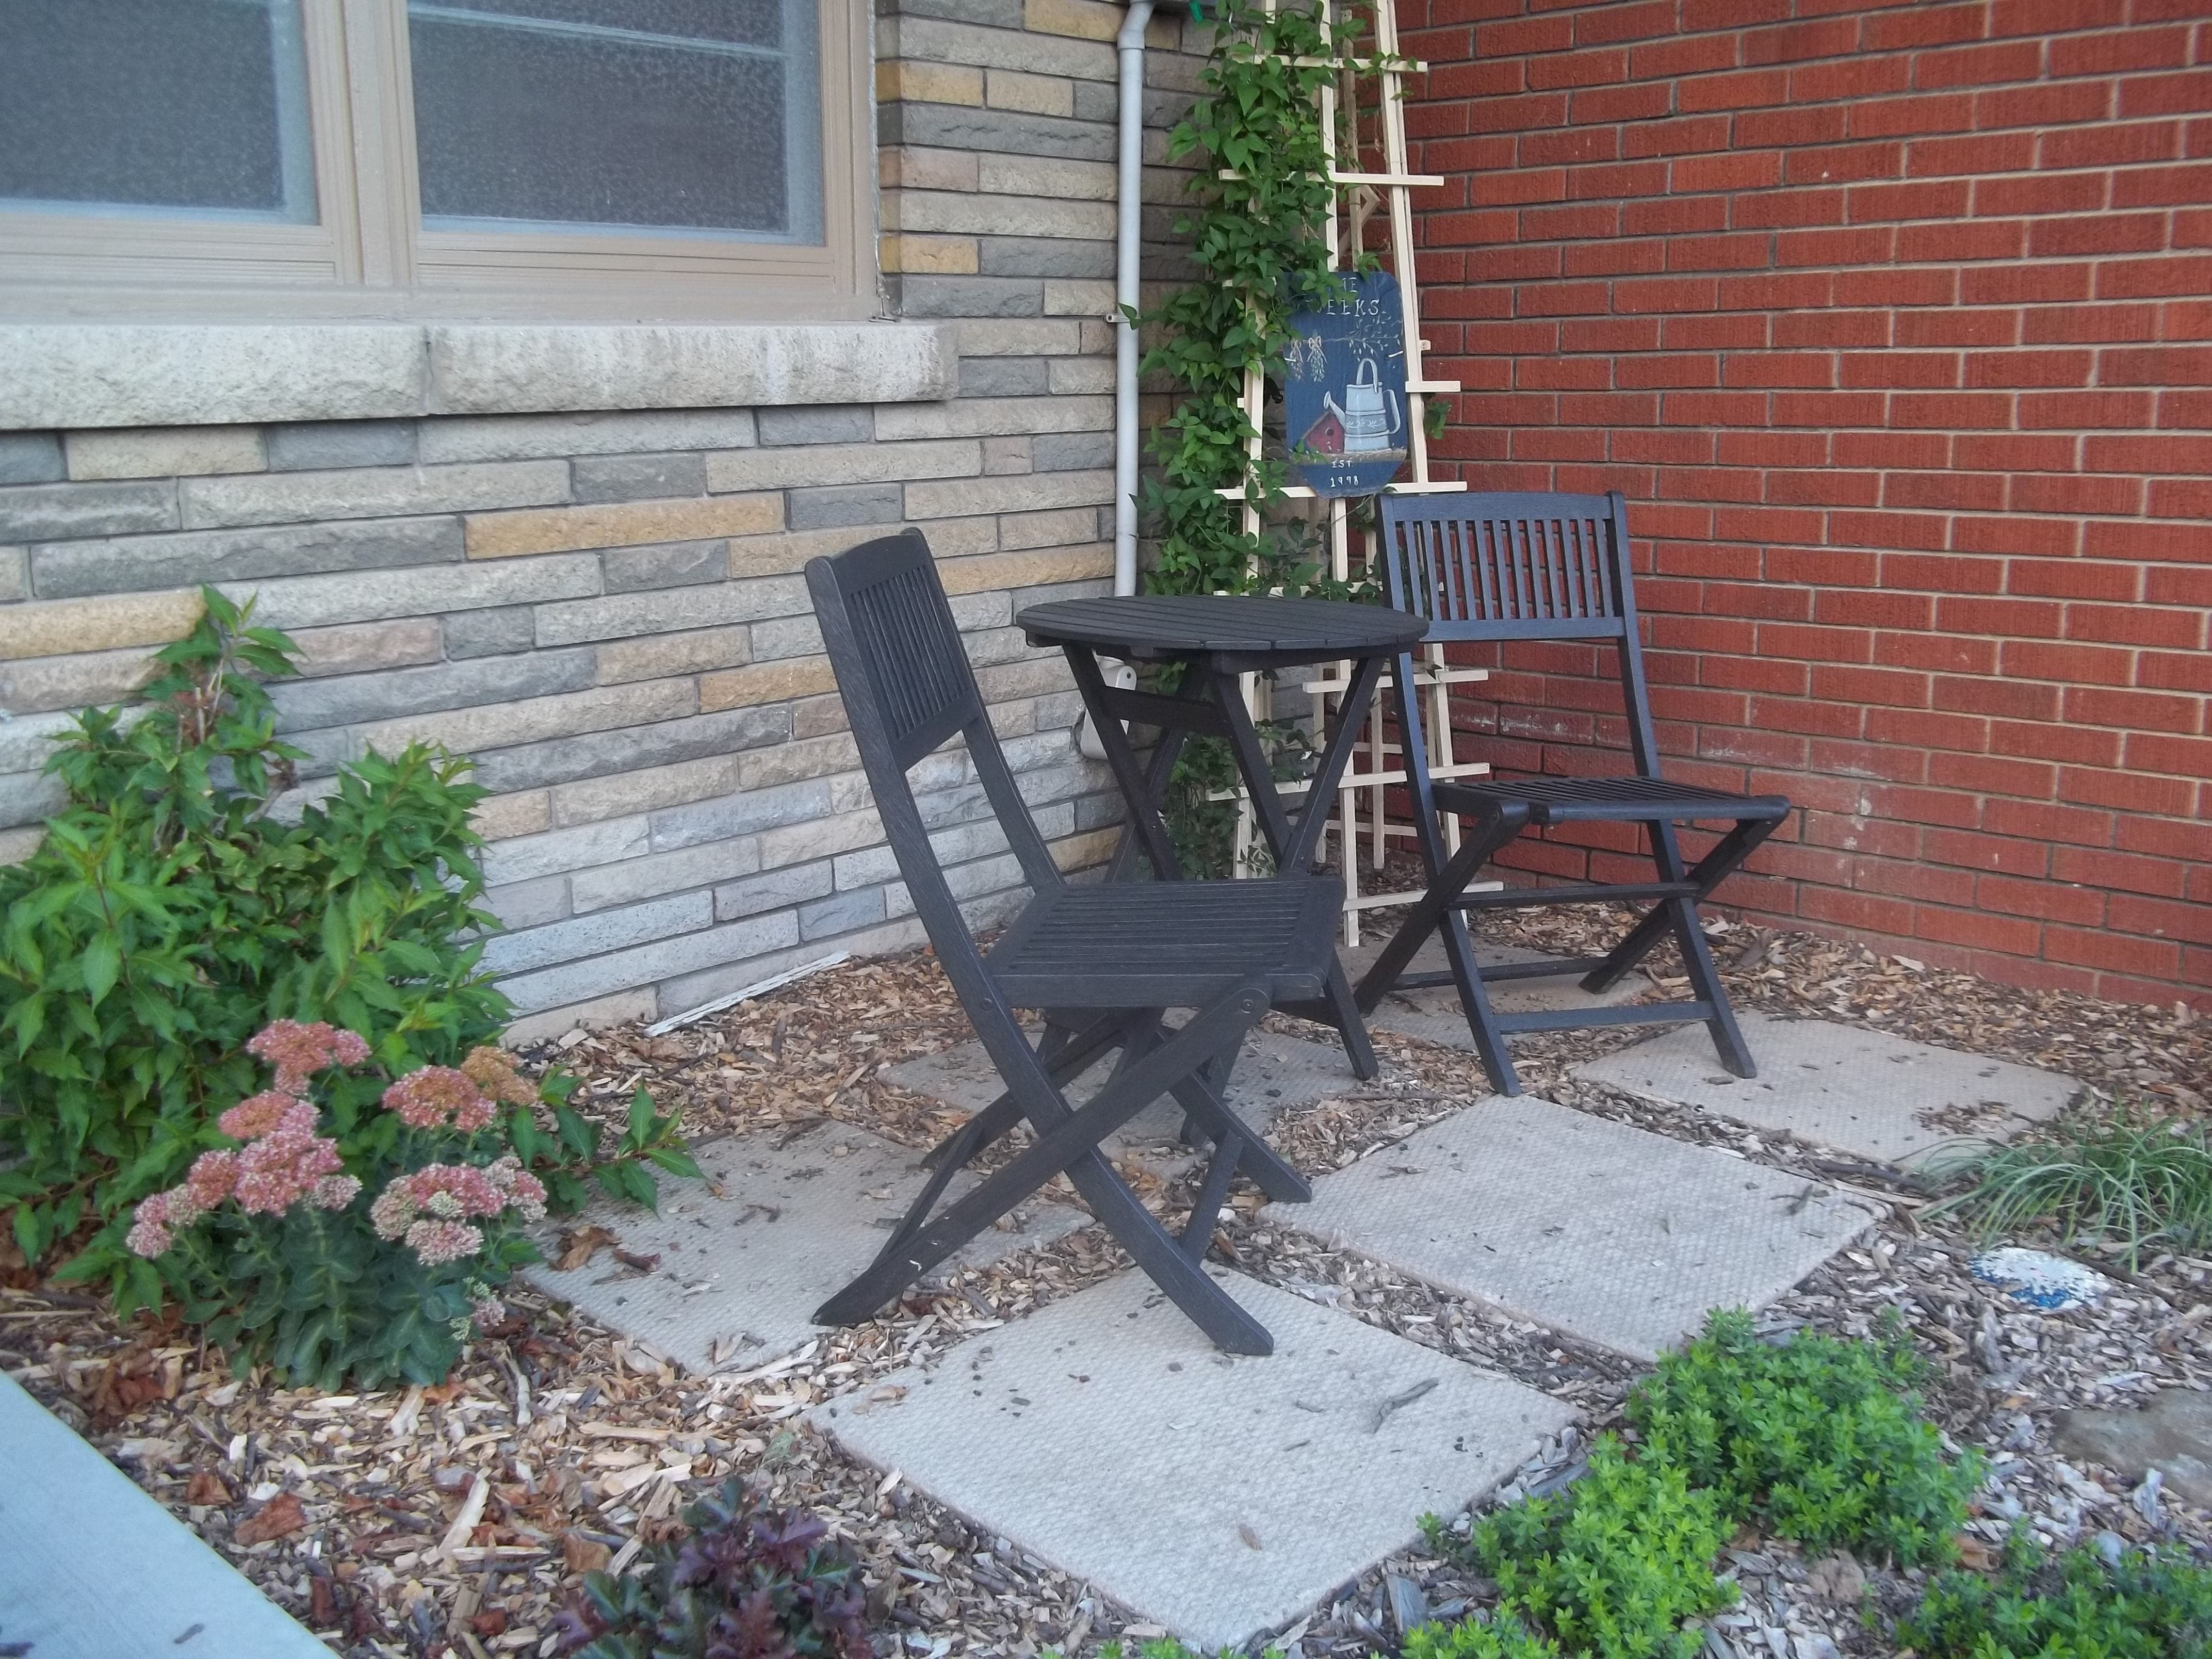 Patio Design Ideas On A Budget concrete patio ideas on a budget 1000 Images About Affordable Backyard Ideas On Pinterest Inexpensive Patio Above Ground Pool Decks And Cheap Patio Ideas